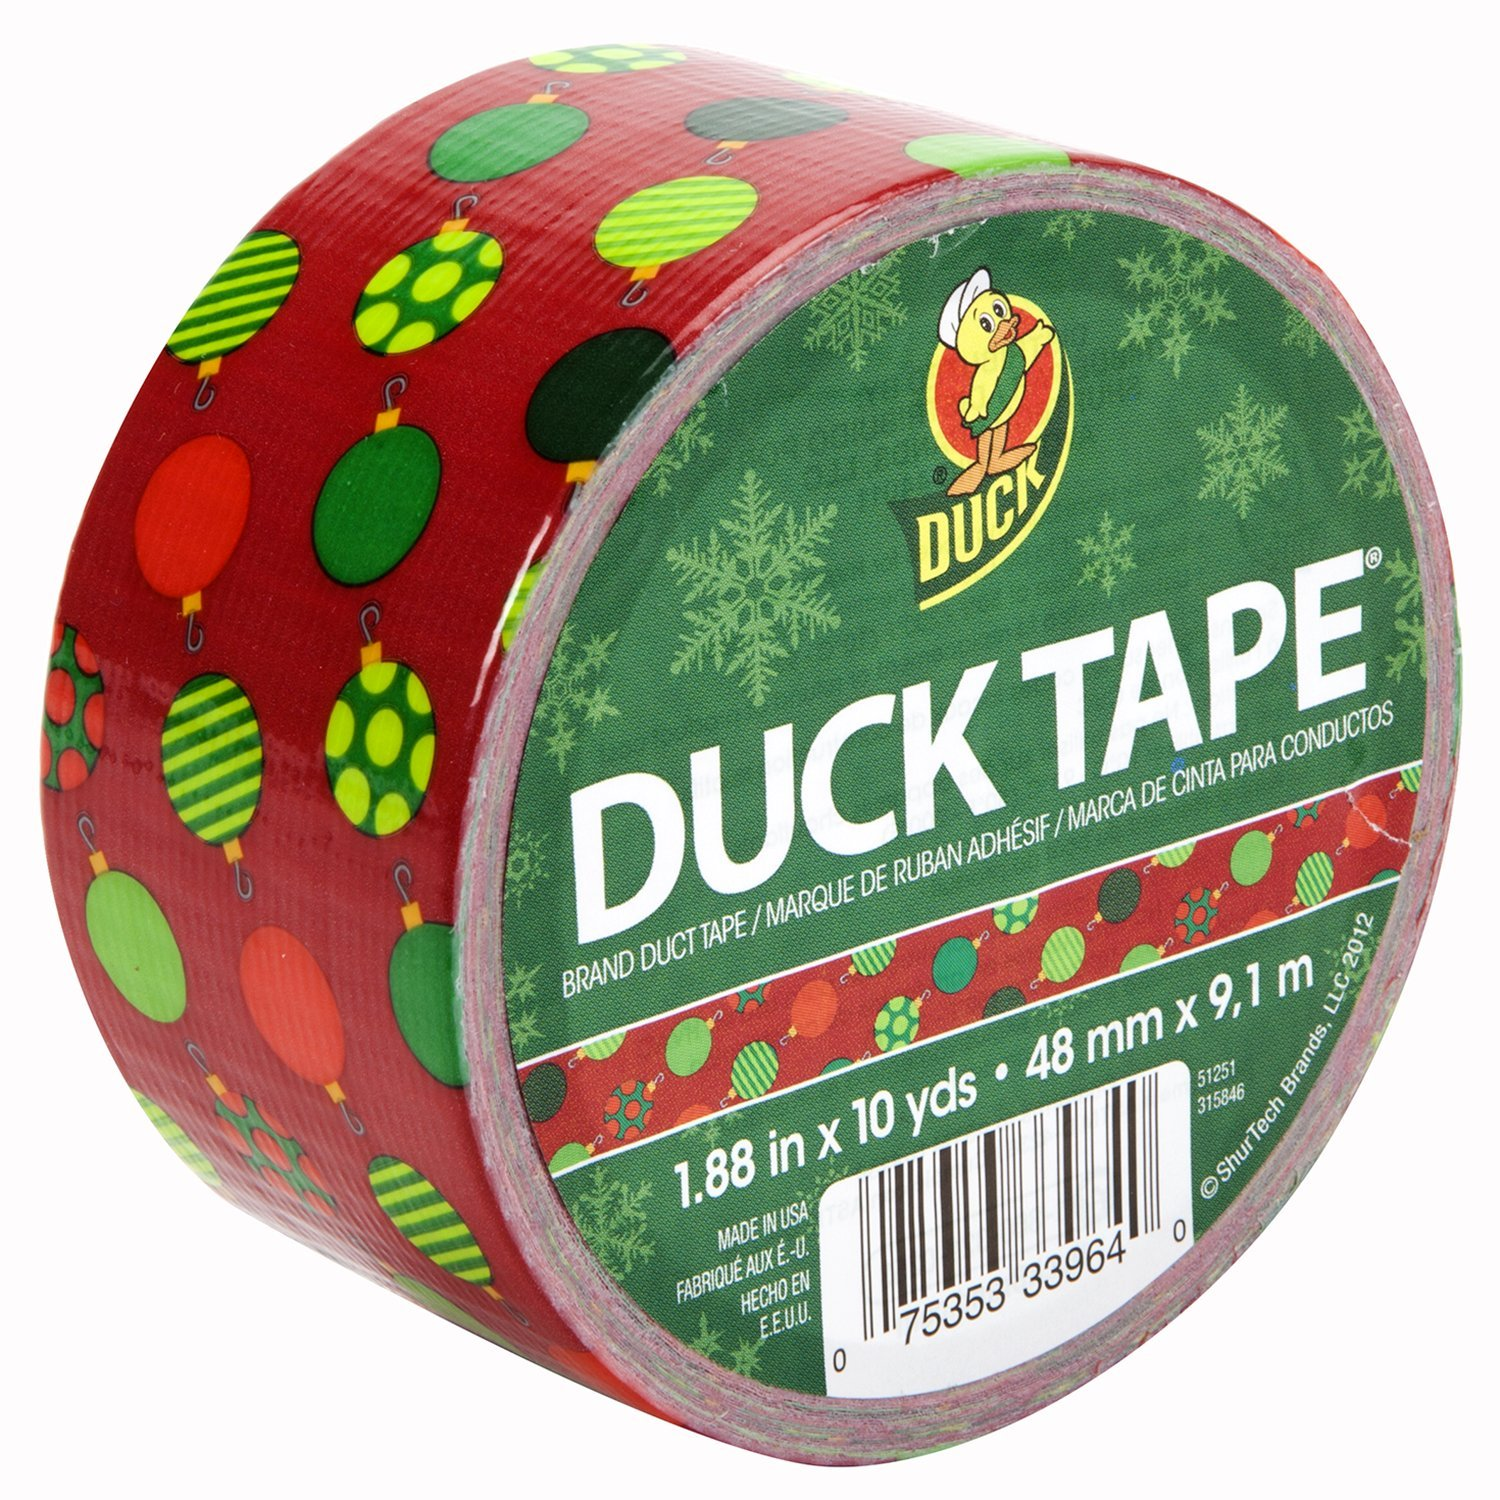 Duck Brand 281840 Printed Duct Tape, Ornaments, 1.88 Inches x 10 Yards, Single Roll